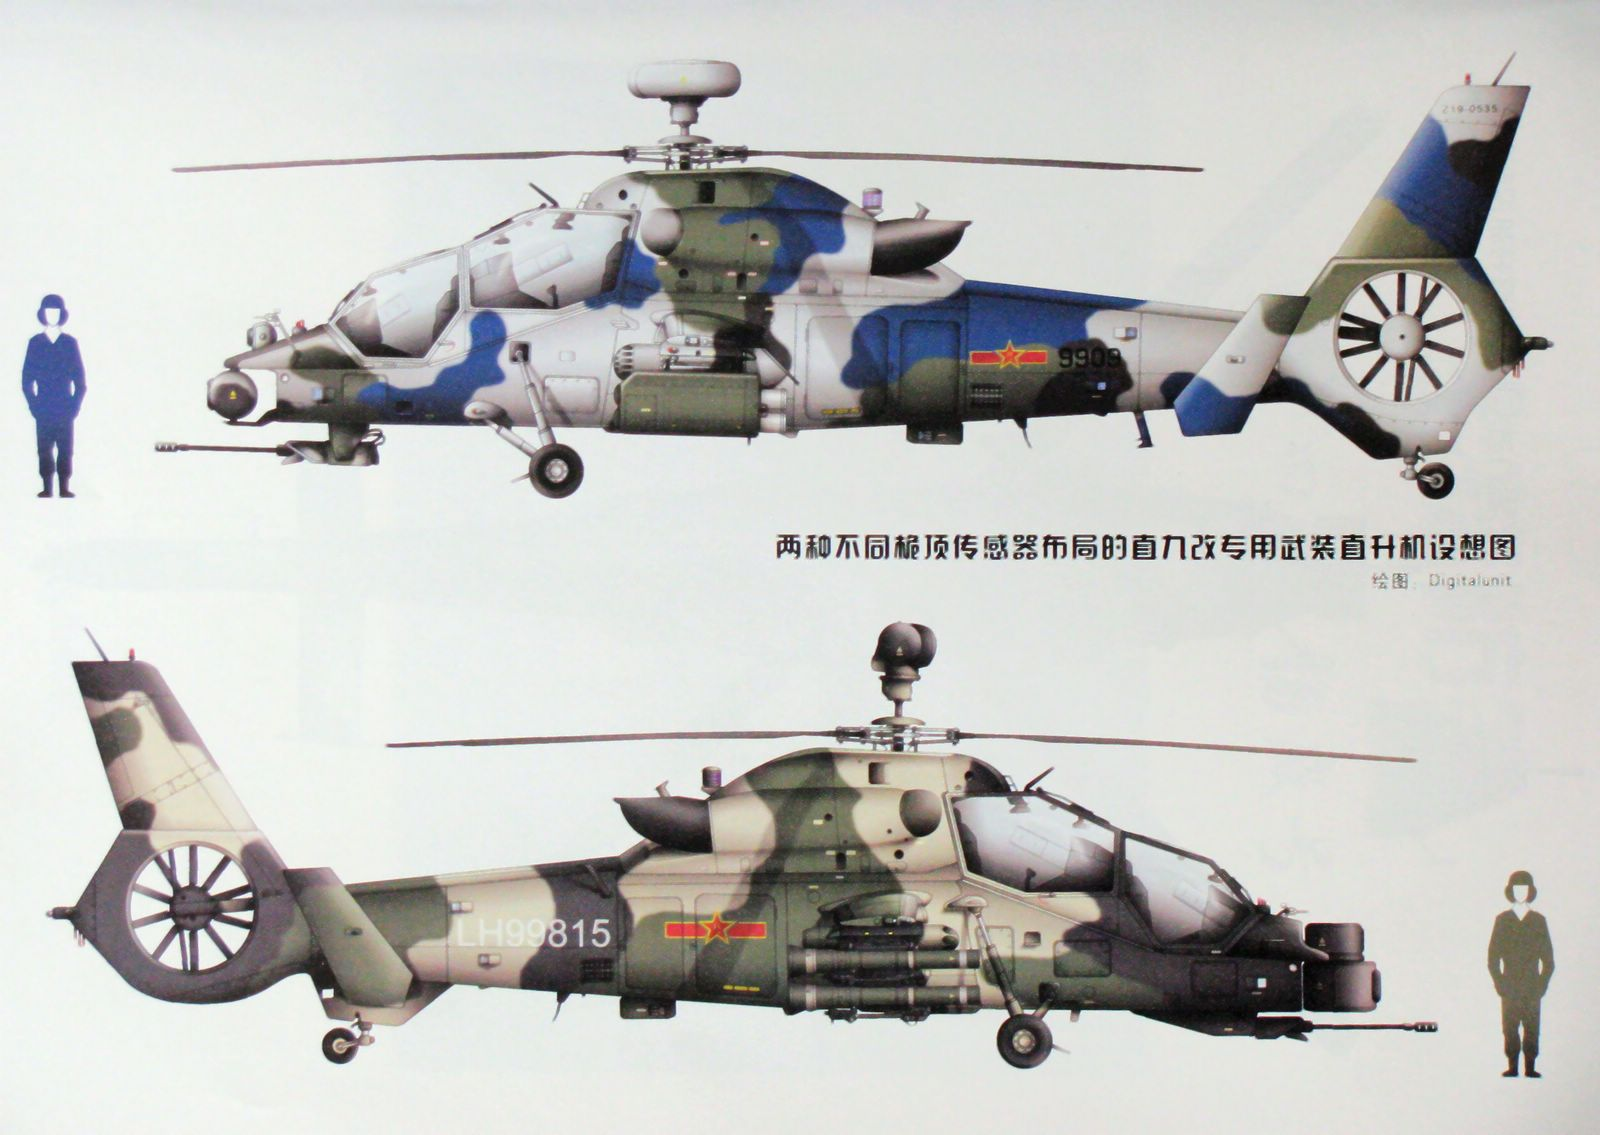 comanche helicopter for sale with 395190936022518873 on Pd Military Helicopters moreover Many Upgrades 1950 Beechcraft Bonanza B35 Aircraft also Aviation Geeks Scramble To I D Osama Raids Mystery Copter furthermore Juliet Marines Ghost Boat Will Be Hard Sell To Us Navy as well Restored 1944 Beechcraft G17s Staggerwing Aircraft.